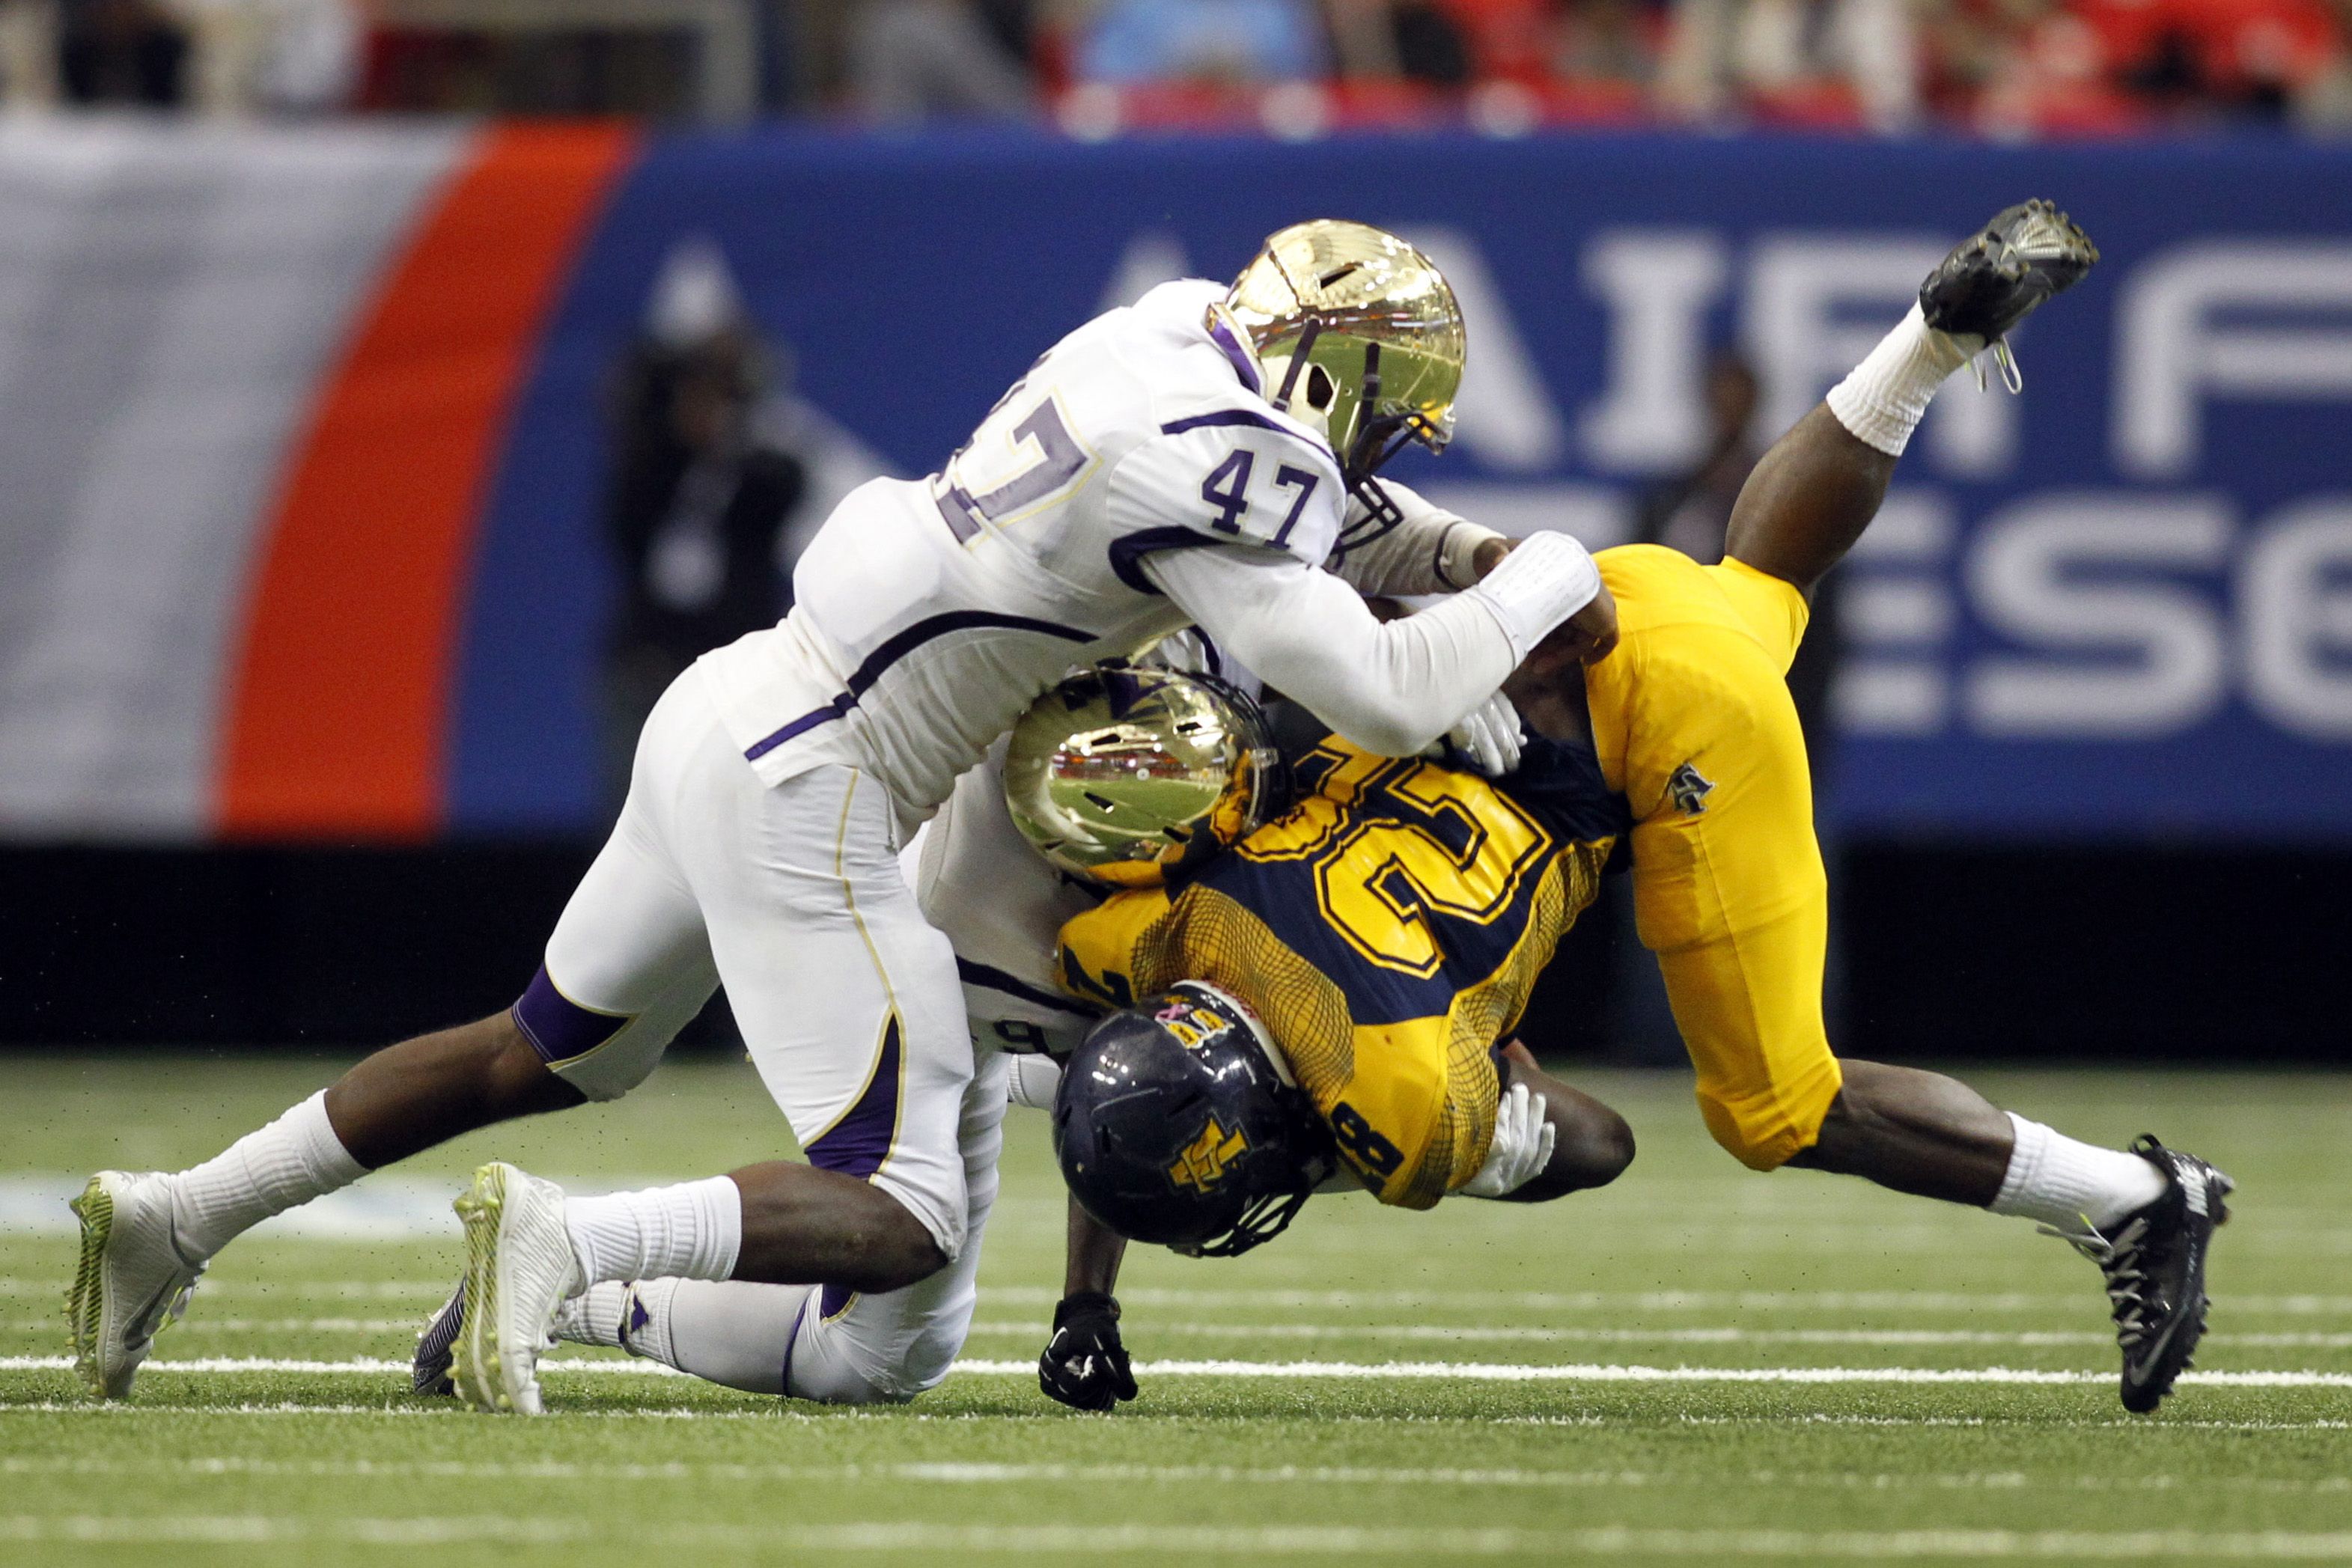 North Carolina A&T Aggies running back Tarik Cohen (28) is tackled by Alcorn State Braves linebacker Michael Hurns (47) and defensive back Anthony Williams Jr. (19) in the second quarter of the 2015 Celebration Bowl at the Georgia Dome.